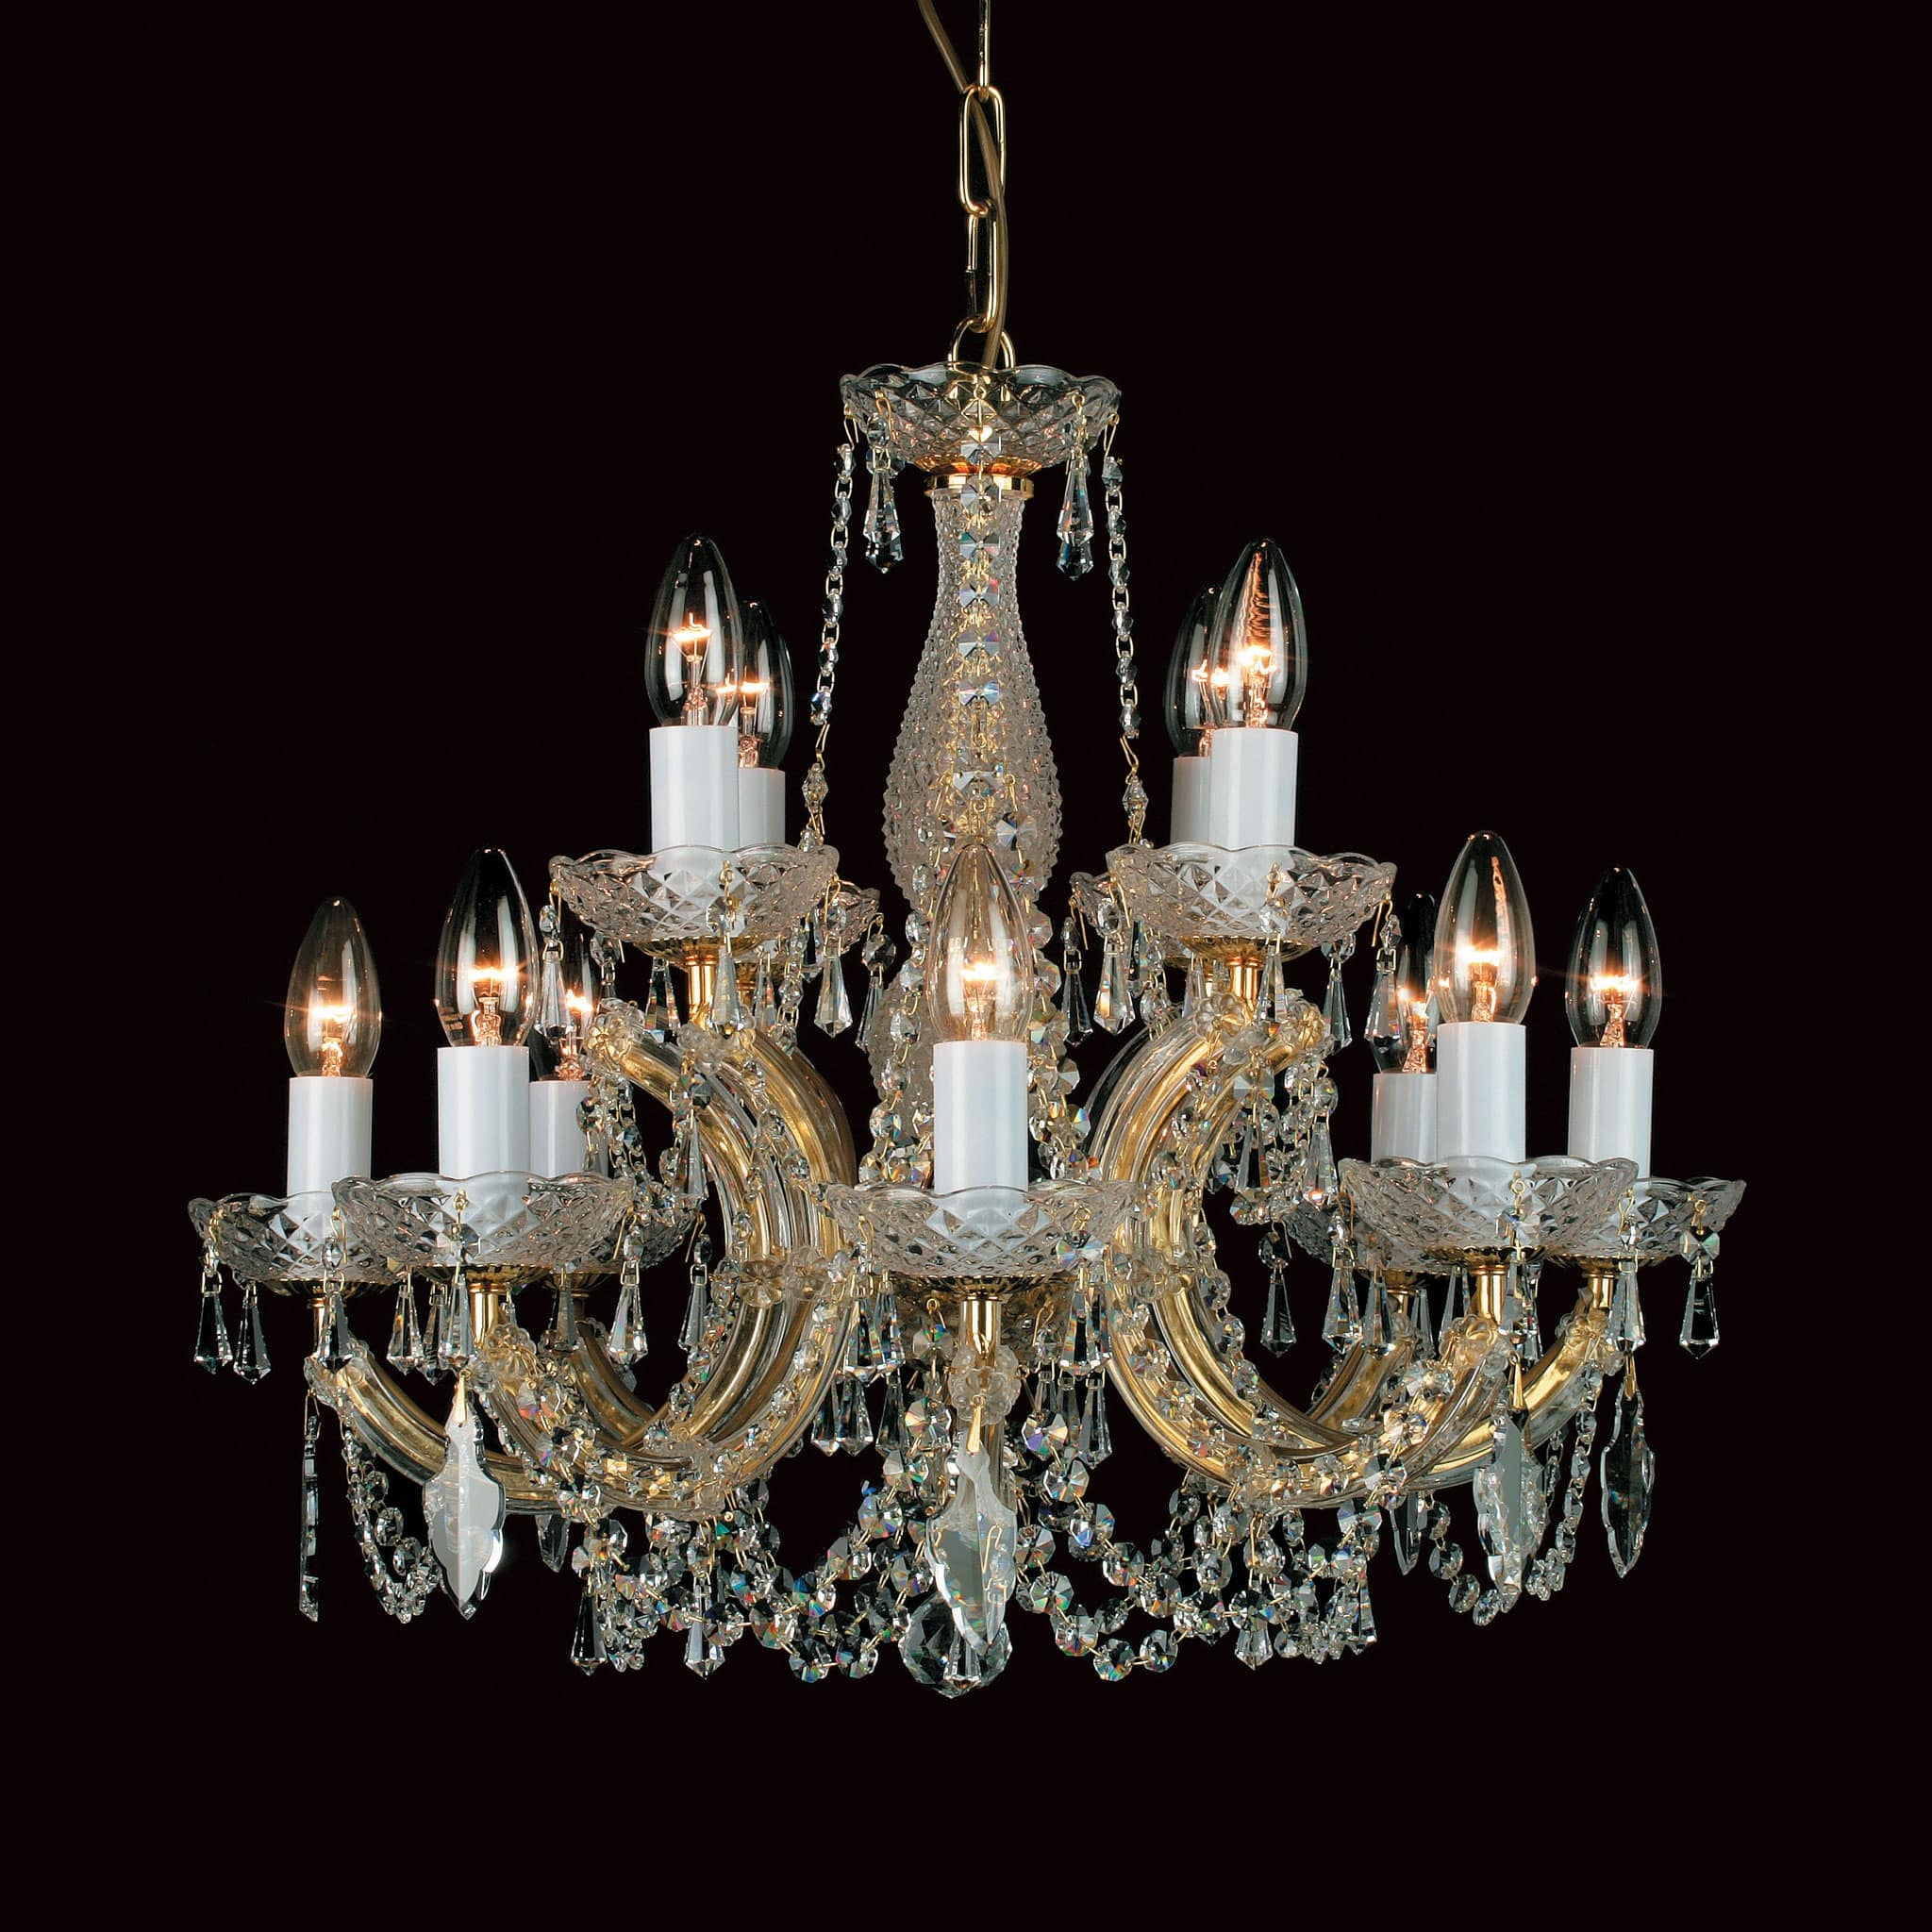 Impex marie therese 12 light gold crystal chandelier chandelier shack impex marie therese 12 light gold crystal chandelier cp0015084g aloadofball Image collections